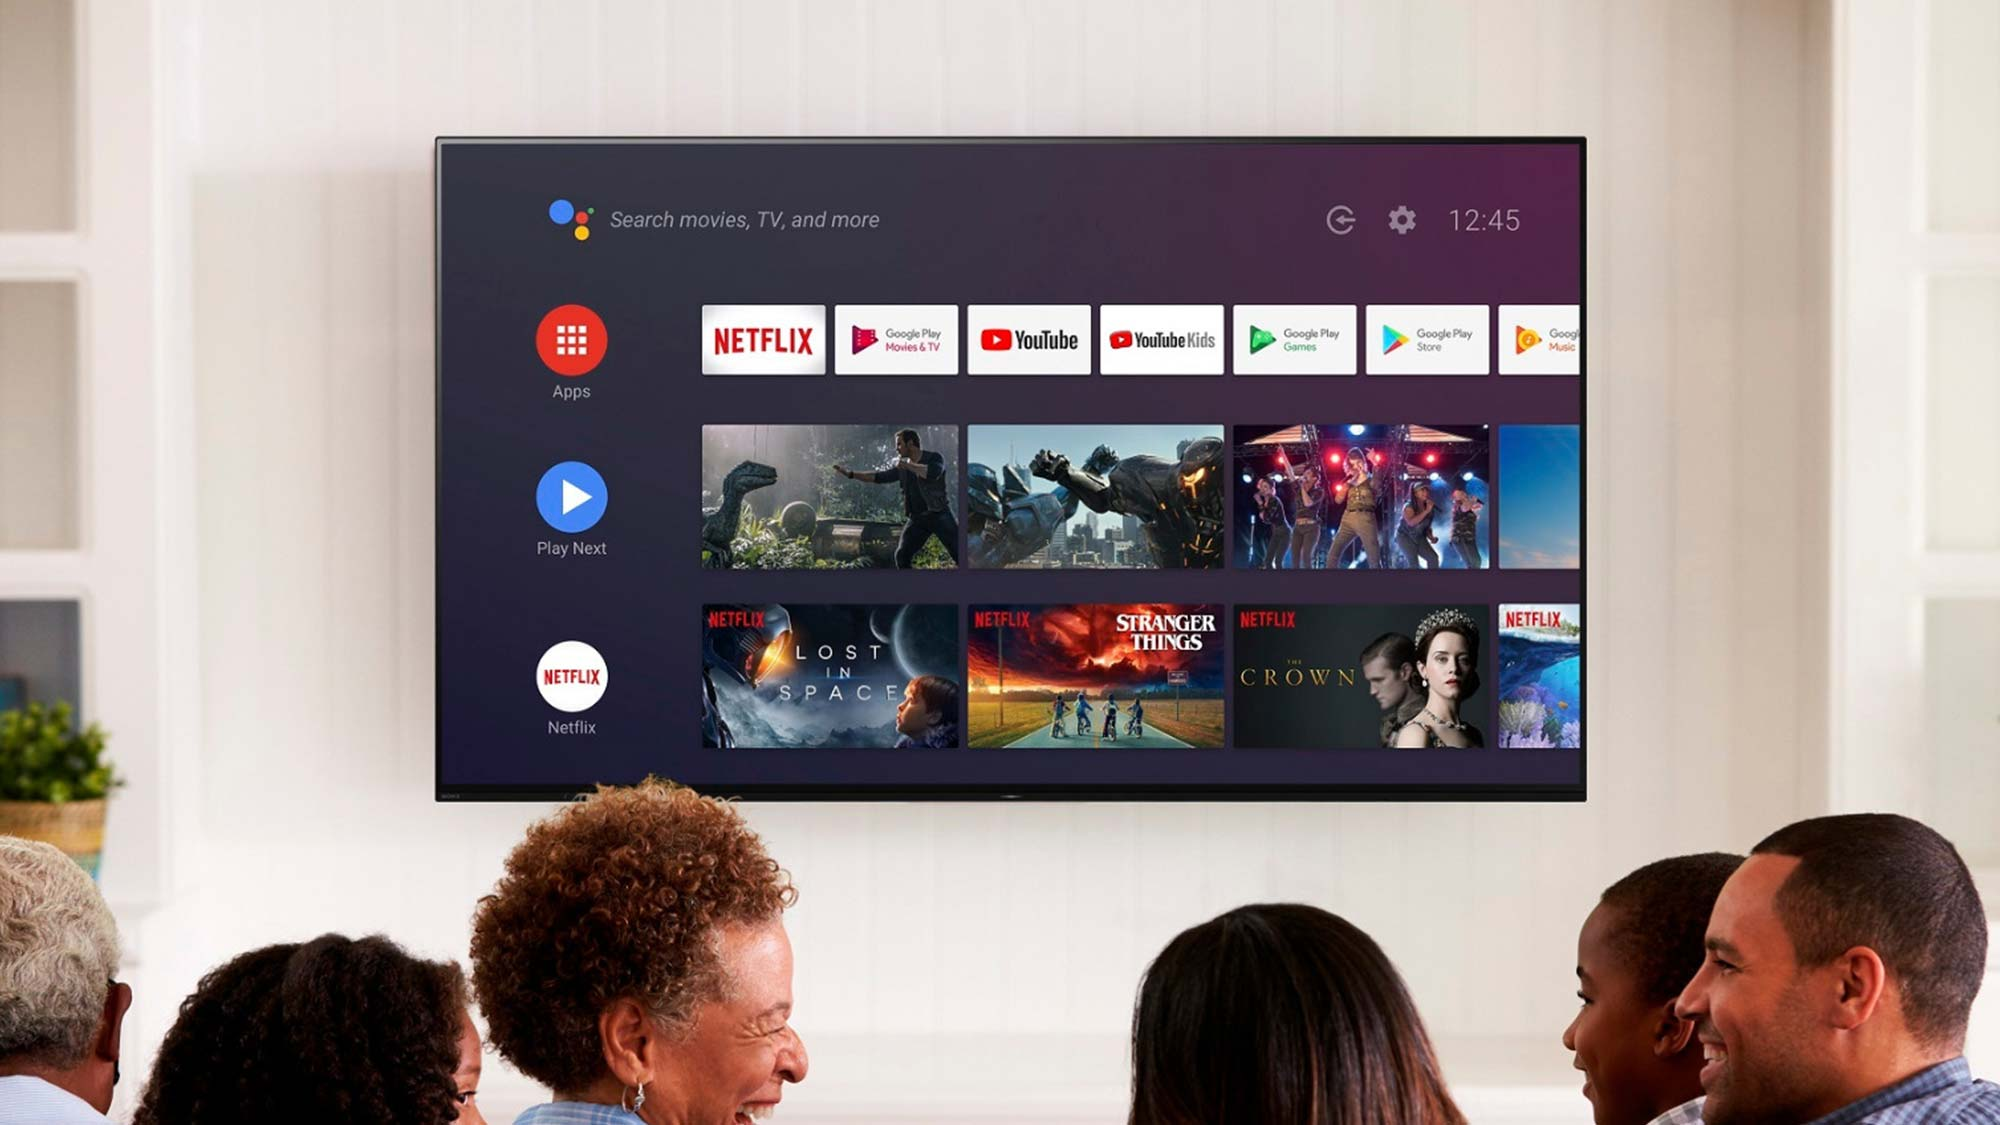 Best OLED TVs: Sony Bravia A8H OLED TV review